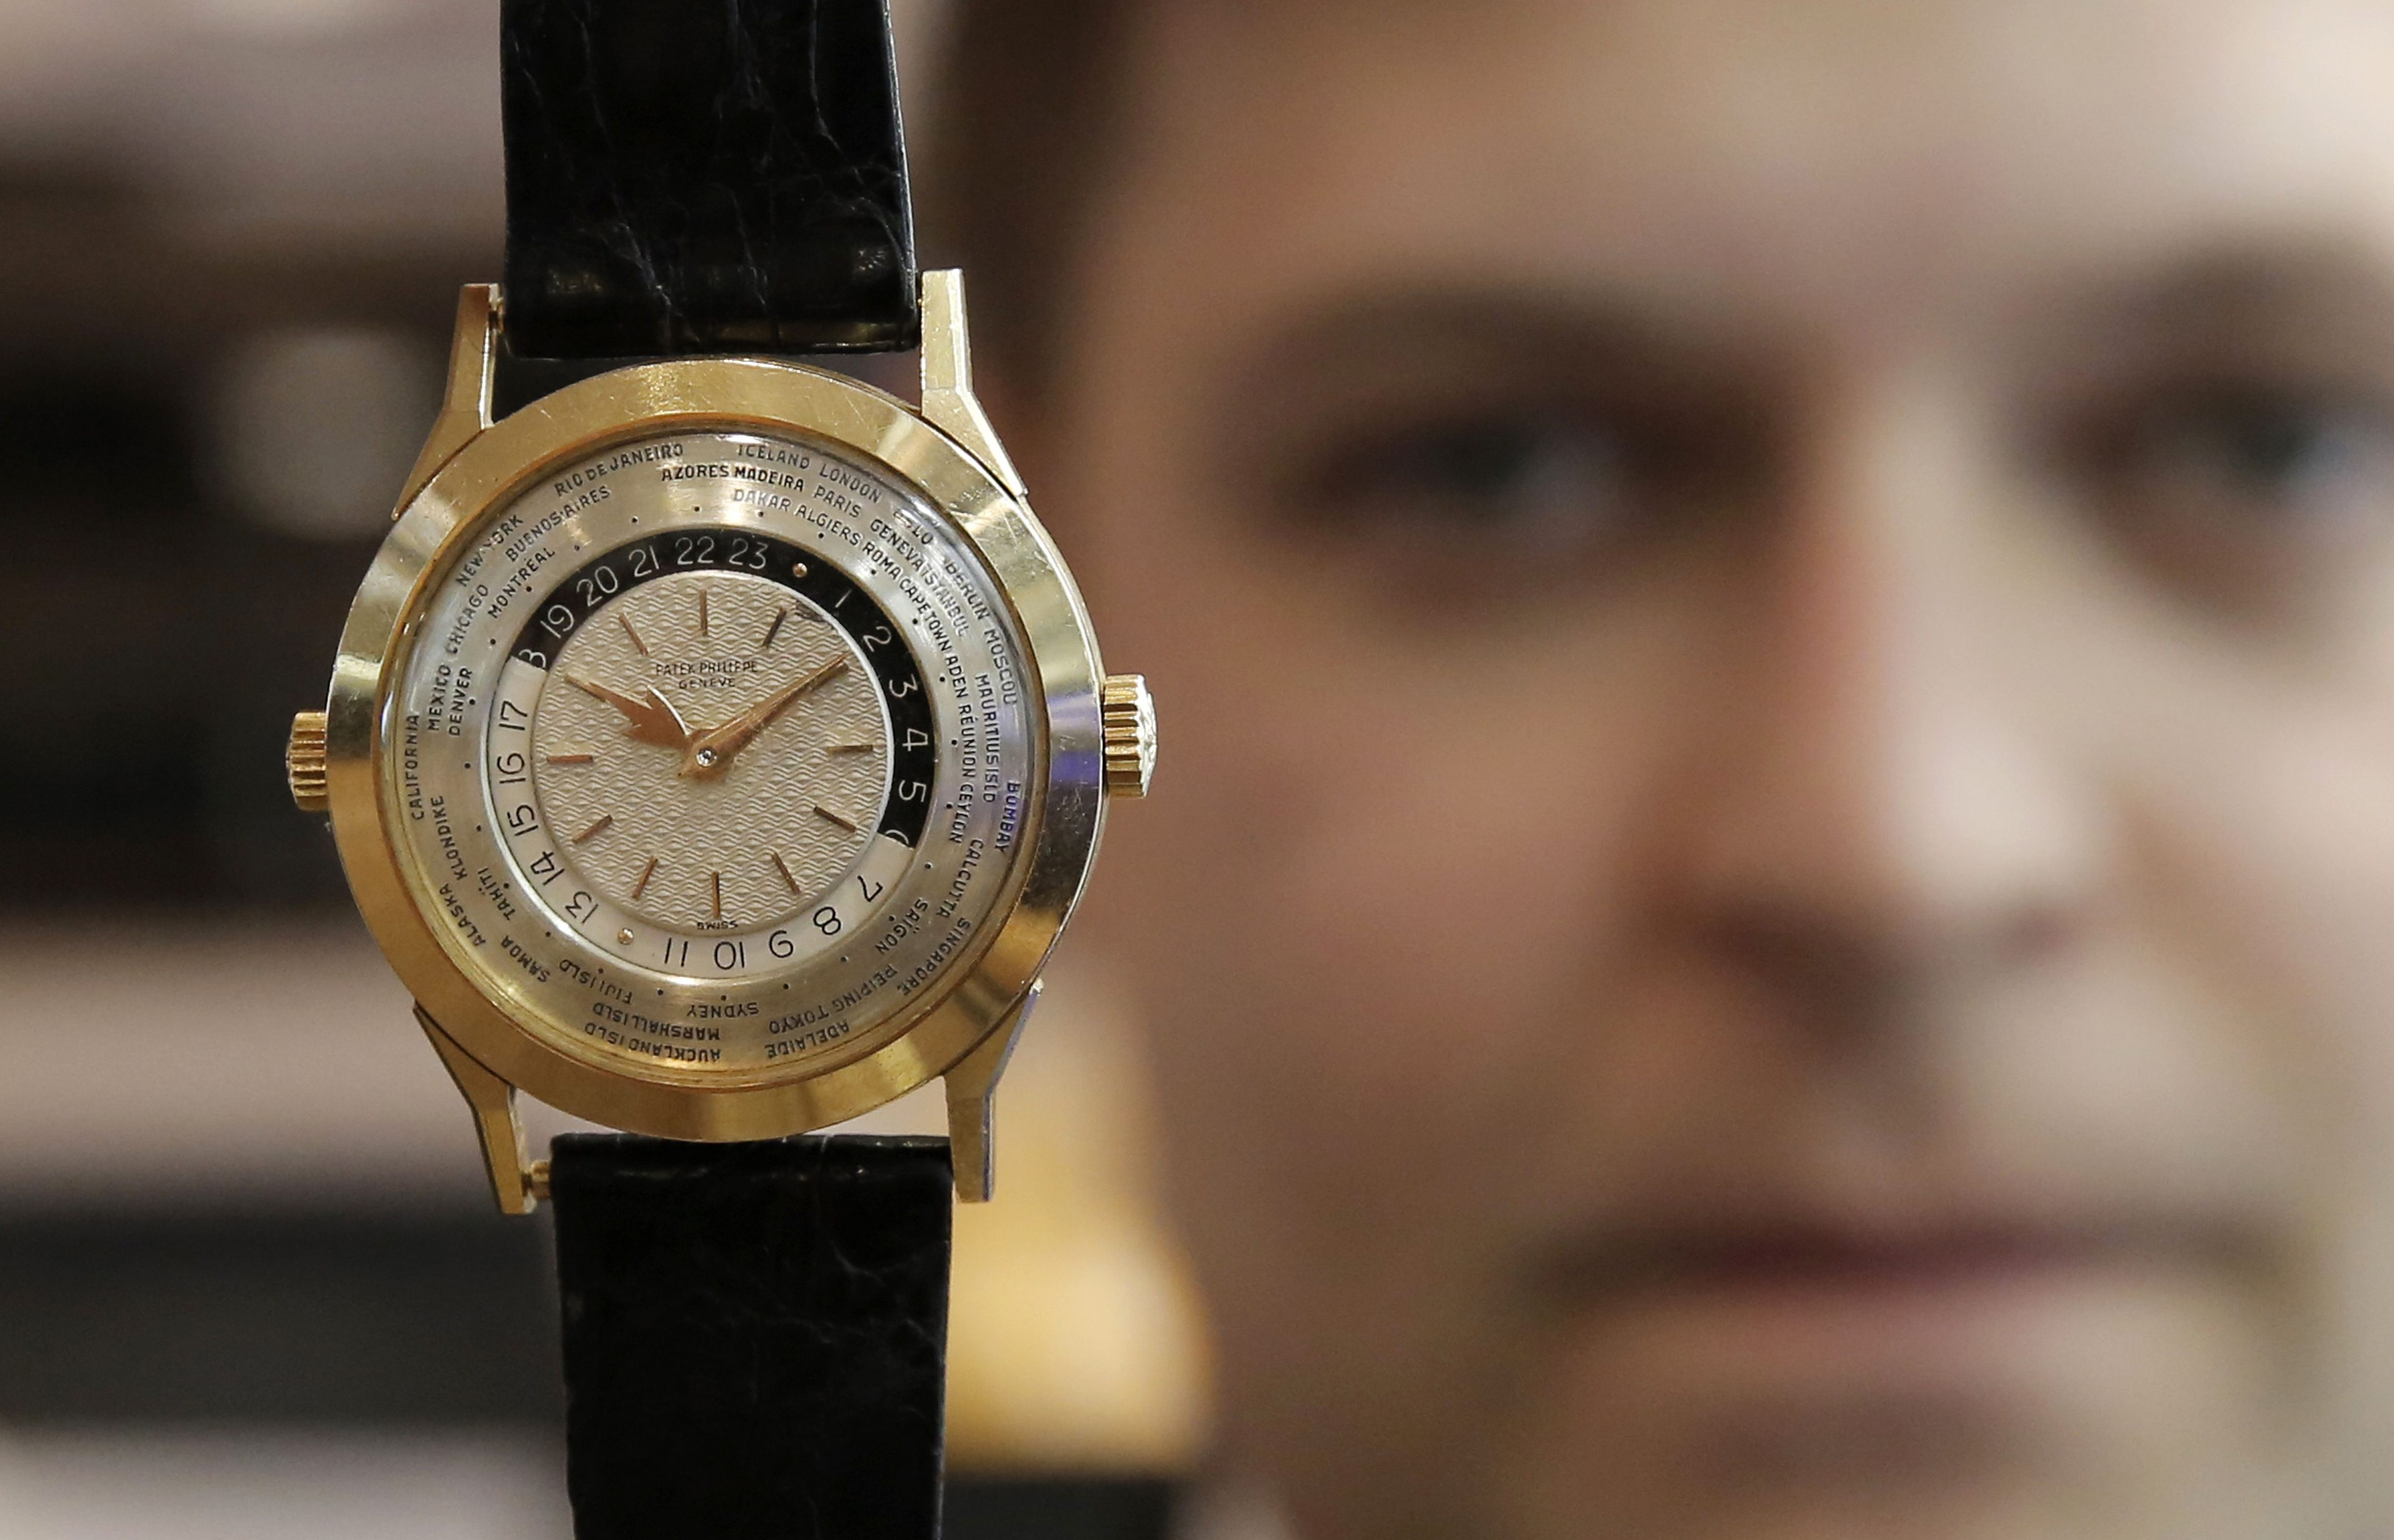 Asia has become a bright spot once again for the watch business. Above, Sam Hines, the global head of watches for Sotheby's holds up a timepiece.